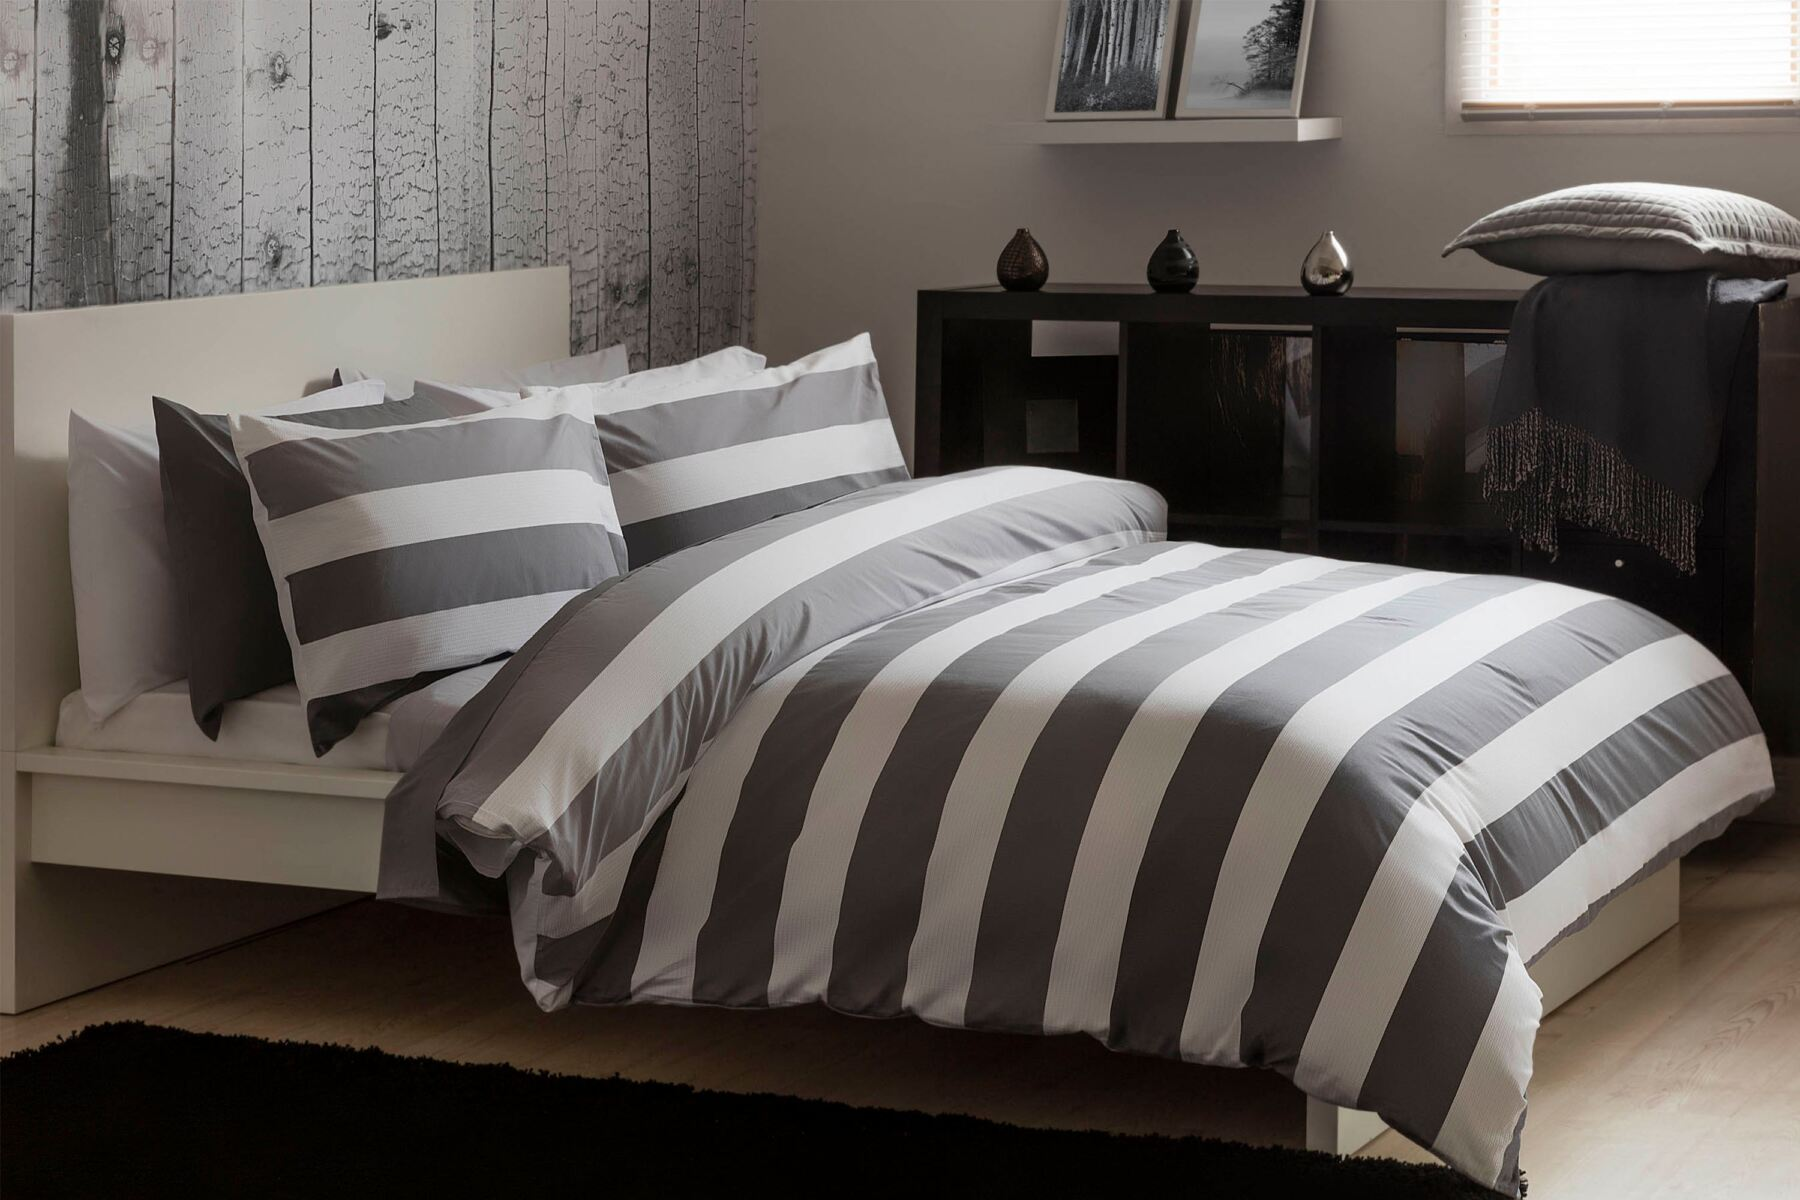 Bedspreads: Infuse Style and Elegance into Your Bedroom